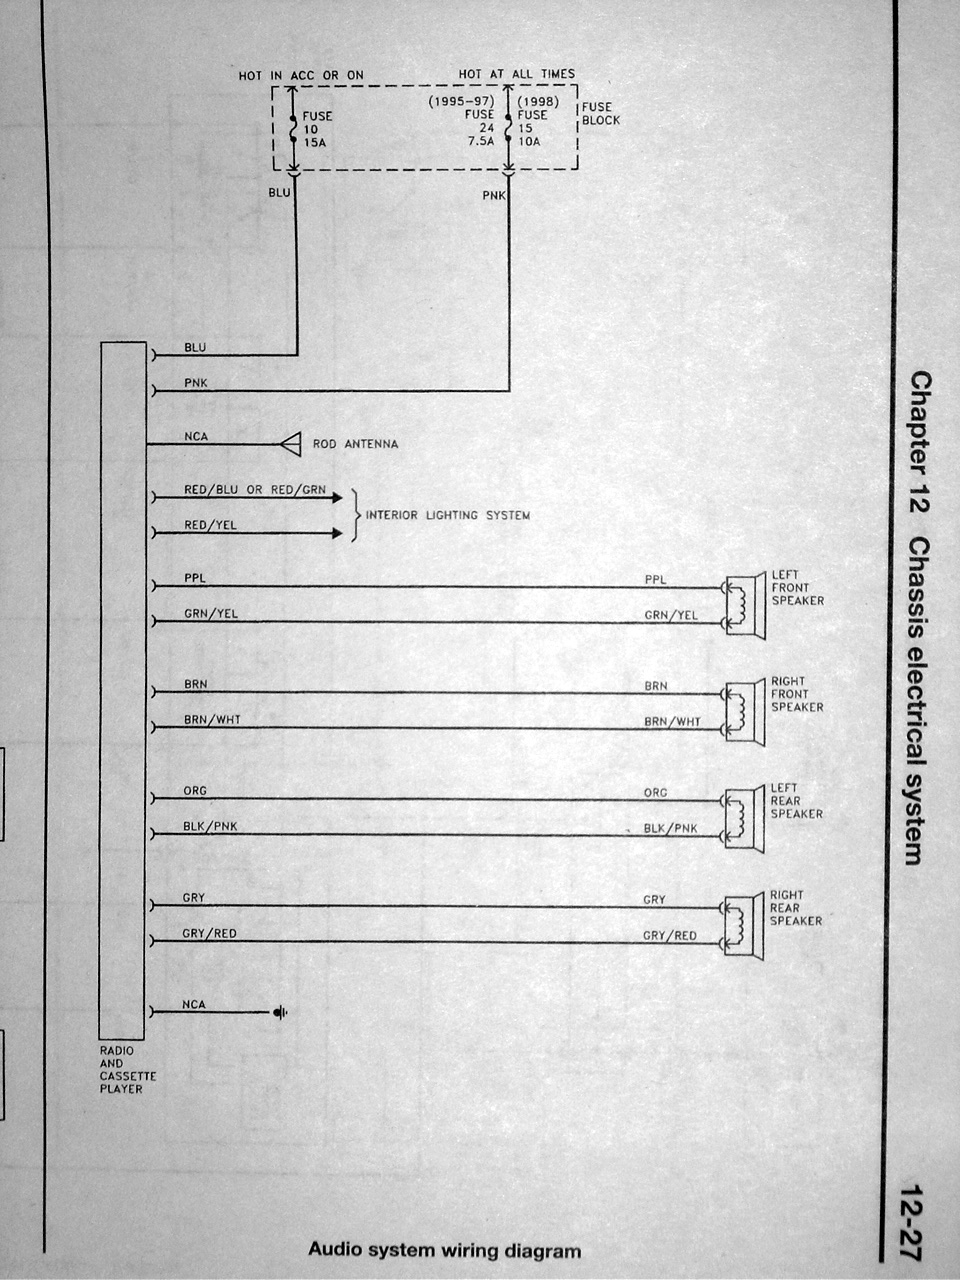 Swell Wiring Diagram Thread Useful Info Nissan Forum Wiring Cloud Eachirenstrafr09Org